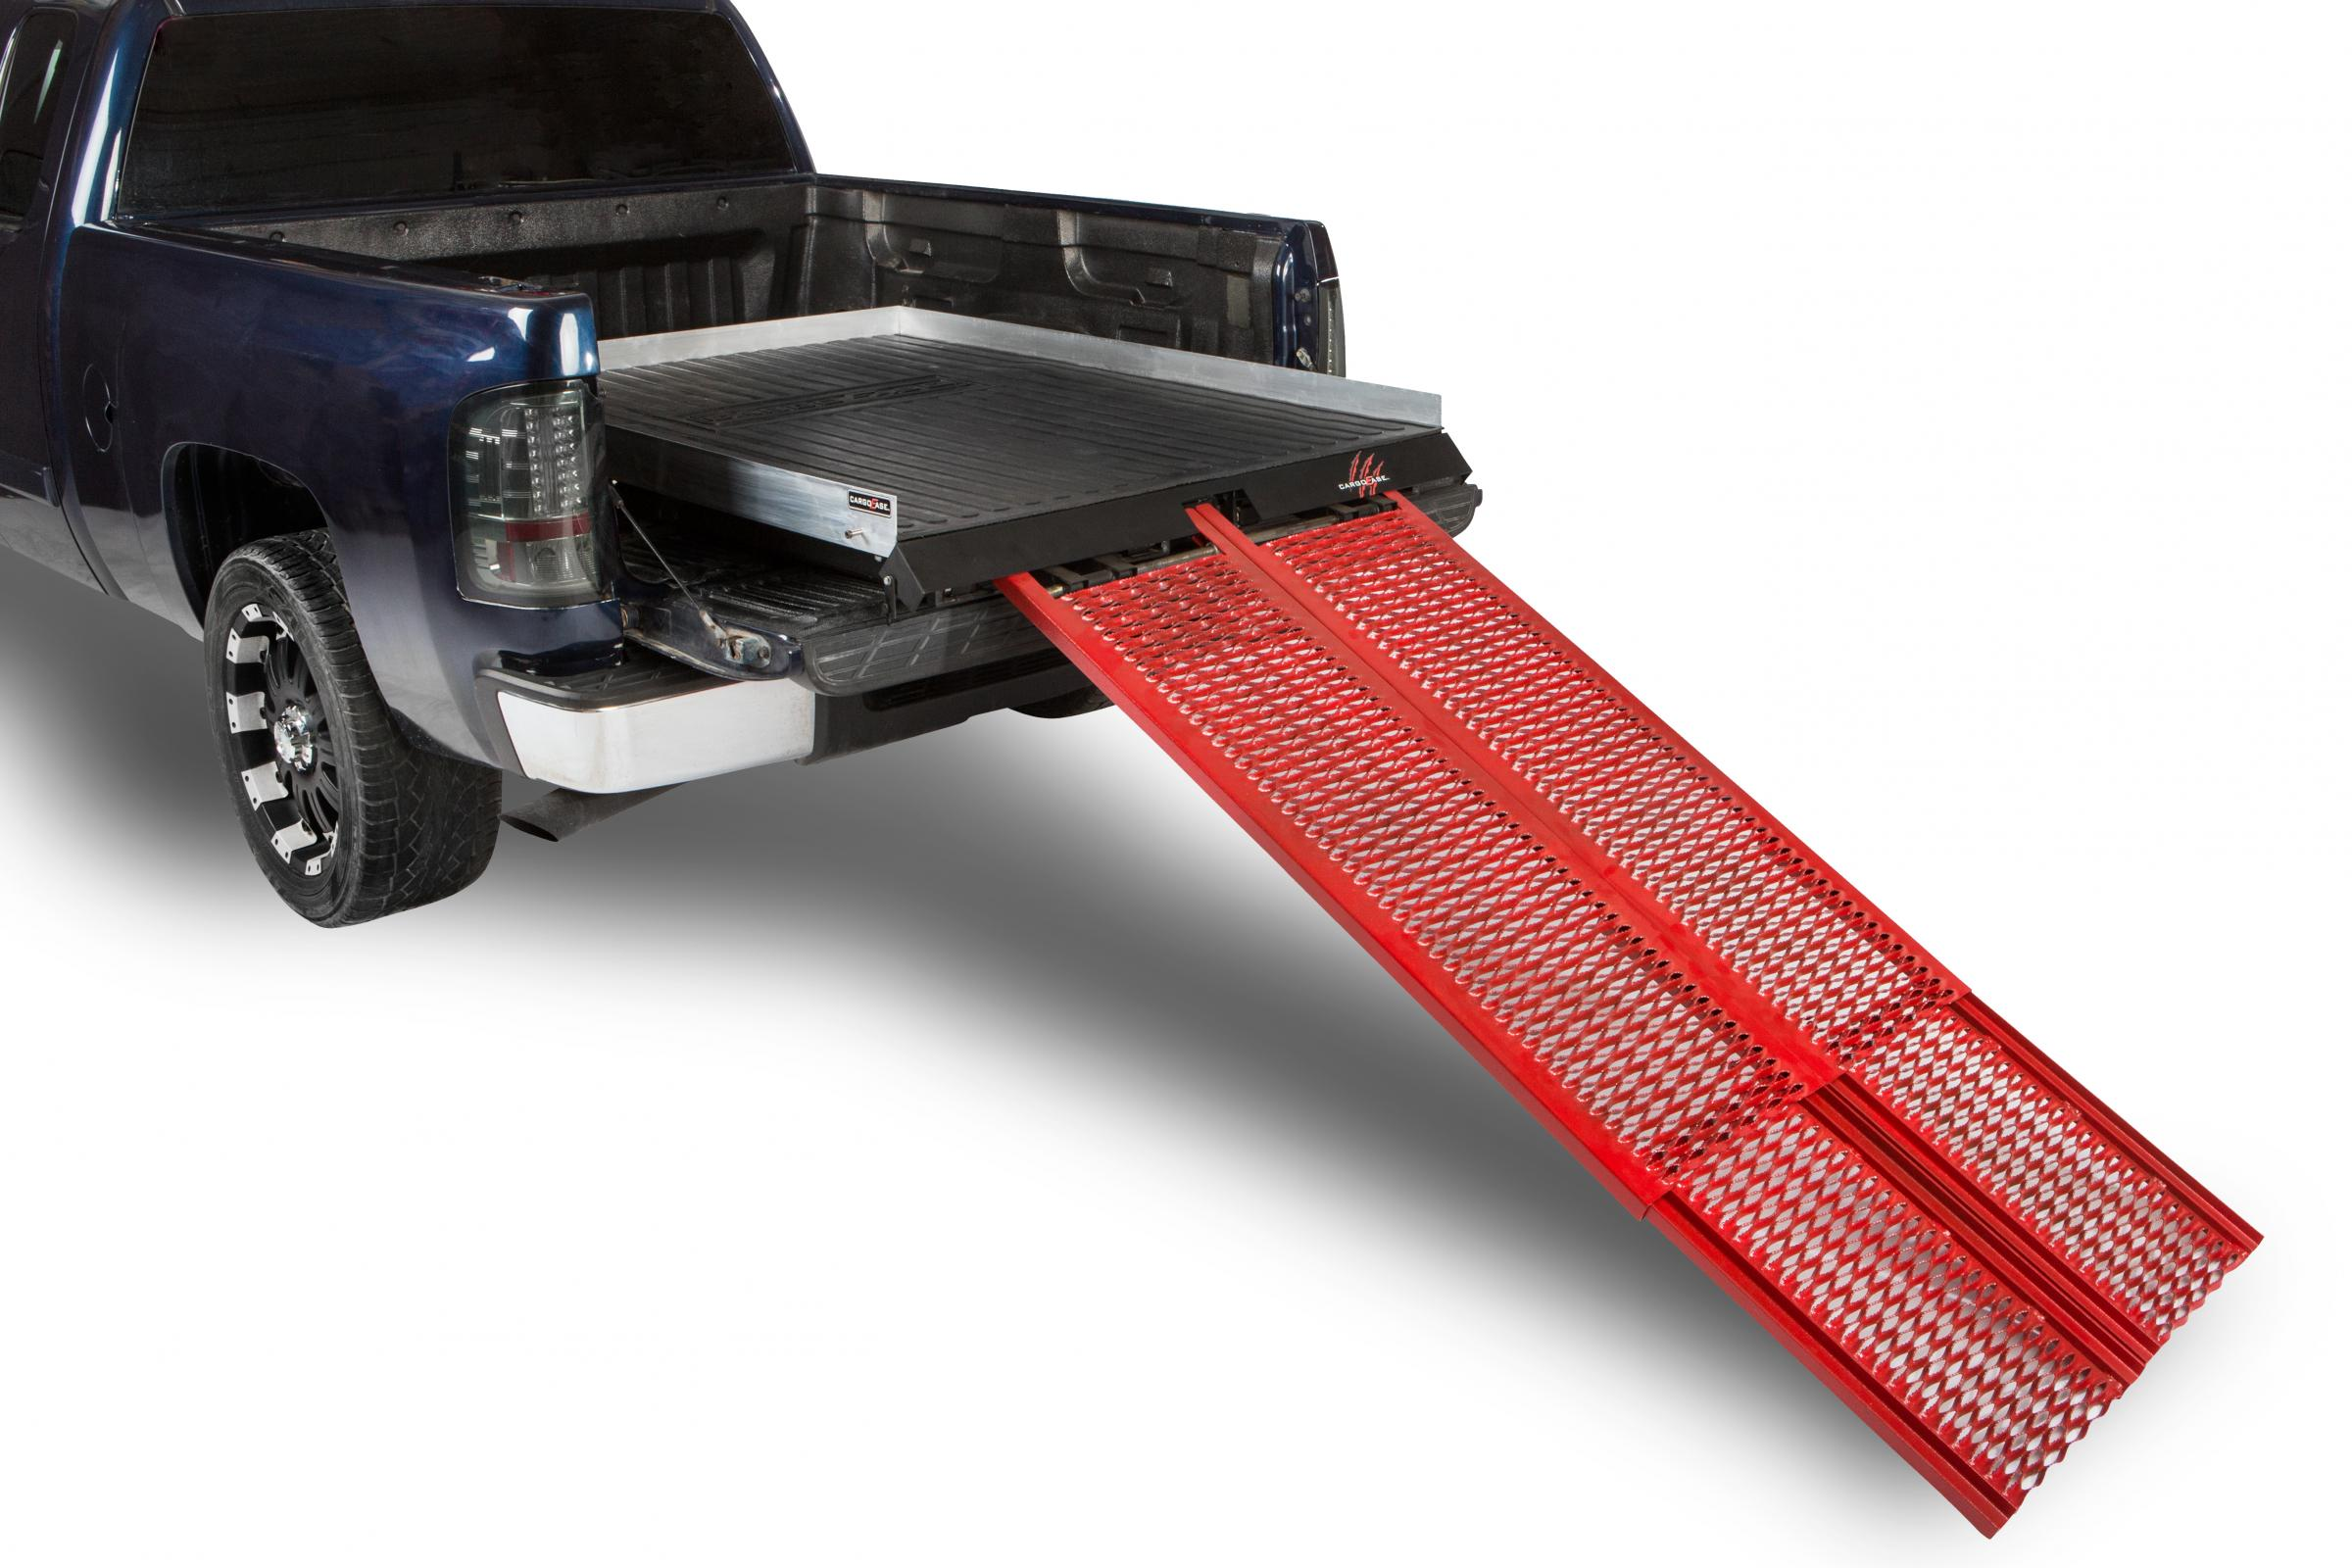 Cargo Ease Cargo Ramp Series Bed Slide 1800 Lb Capacity 07-Pres Toyota Tundra Crew Max Short Bed